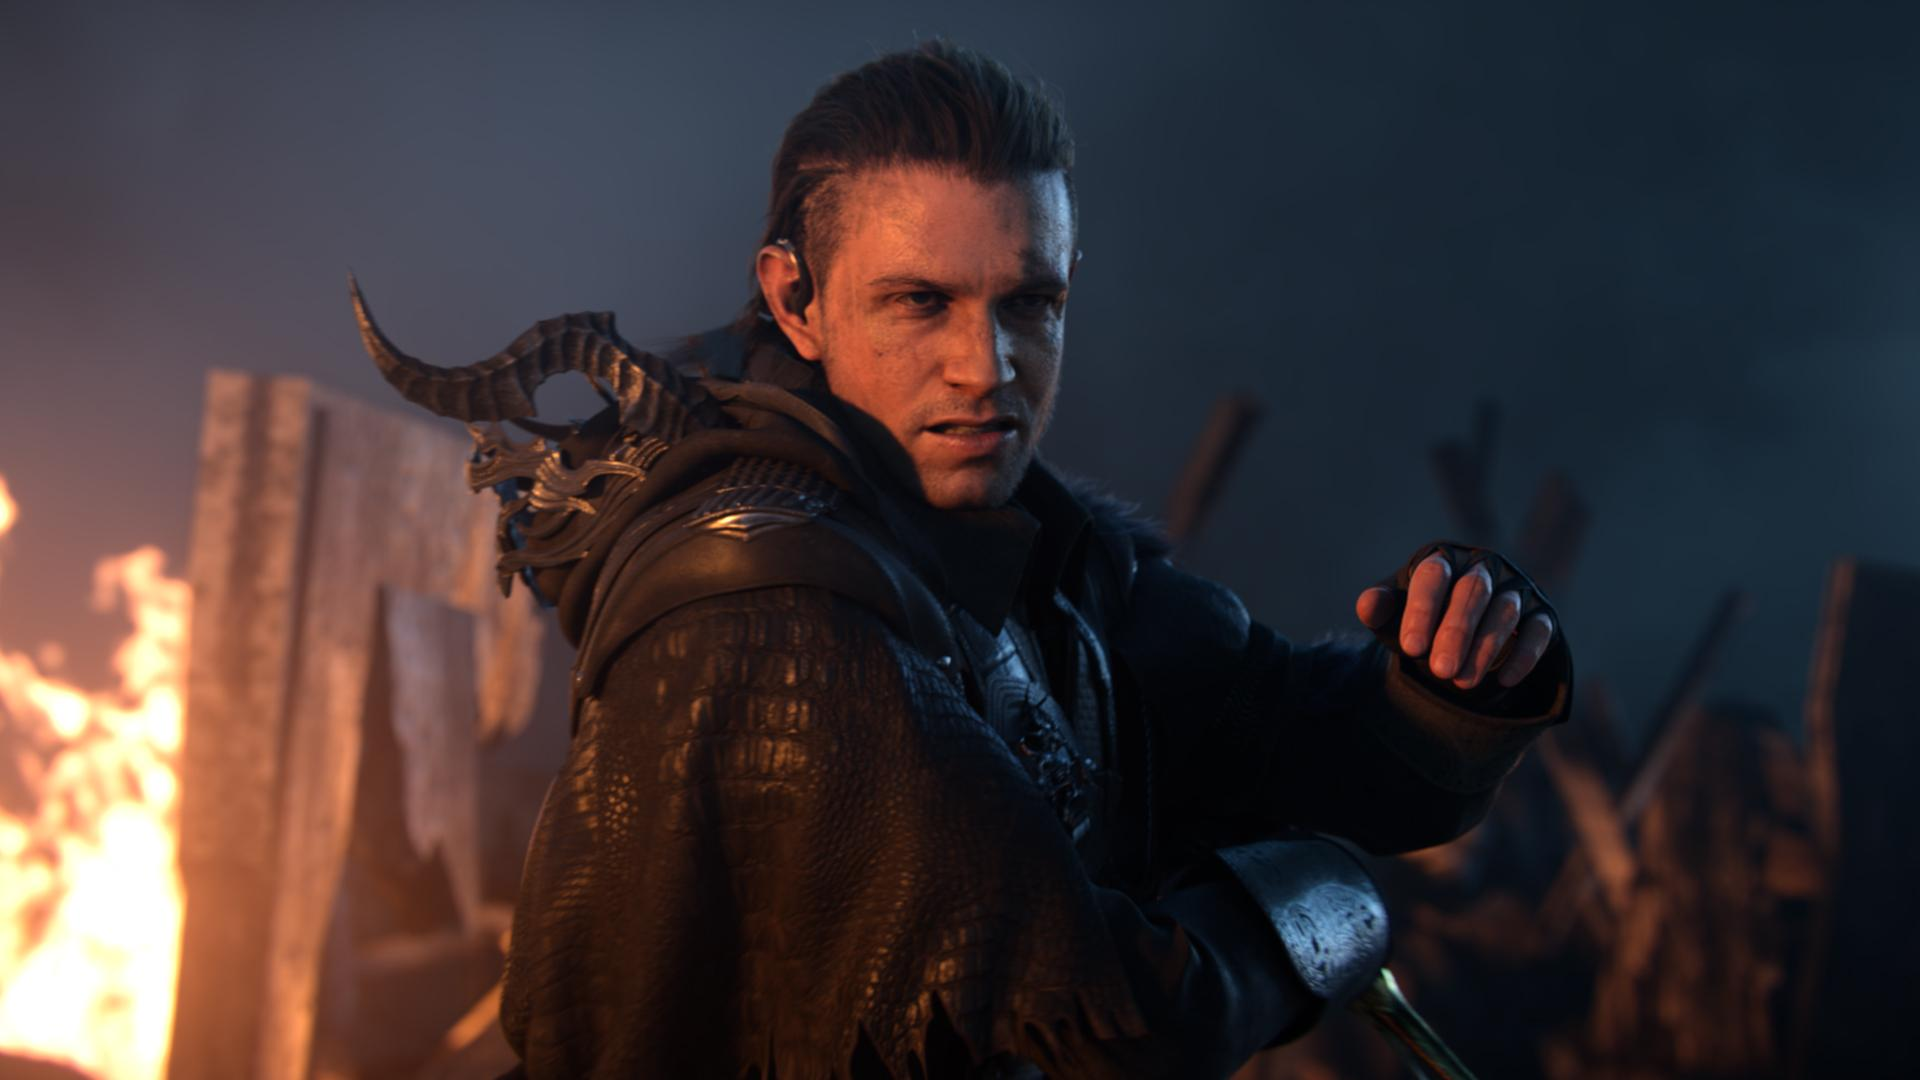 Behind the scenes of the software in Square Enix's Final Fantasy XV Kingsglaive